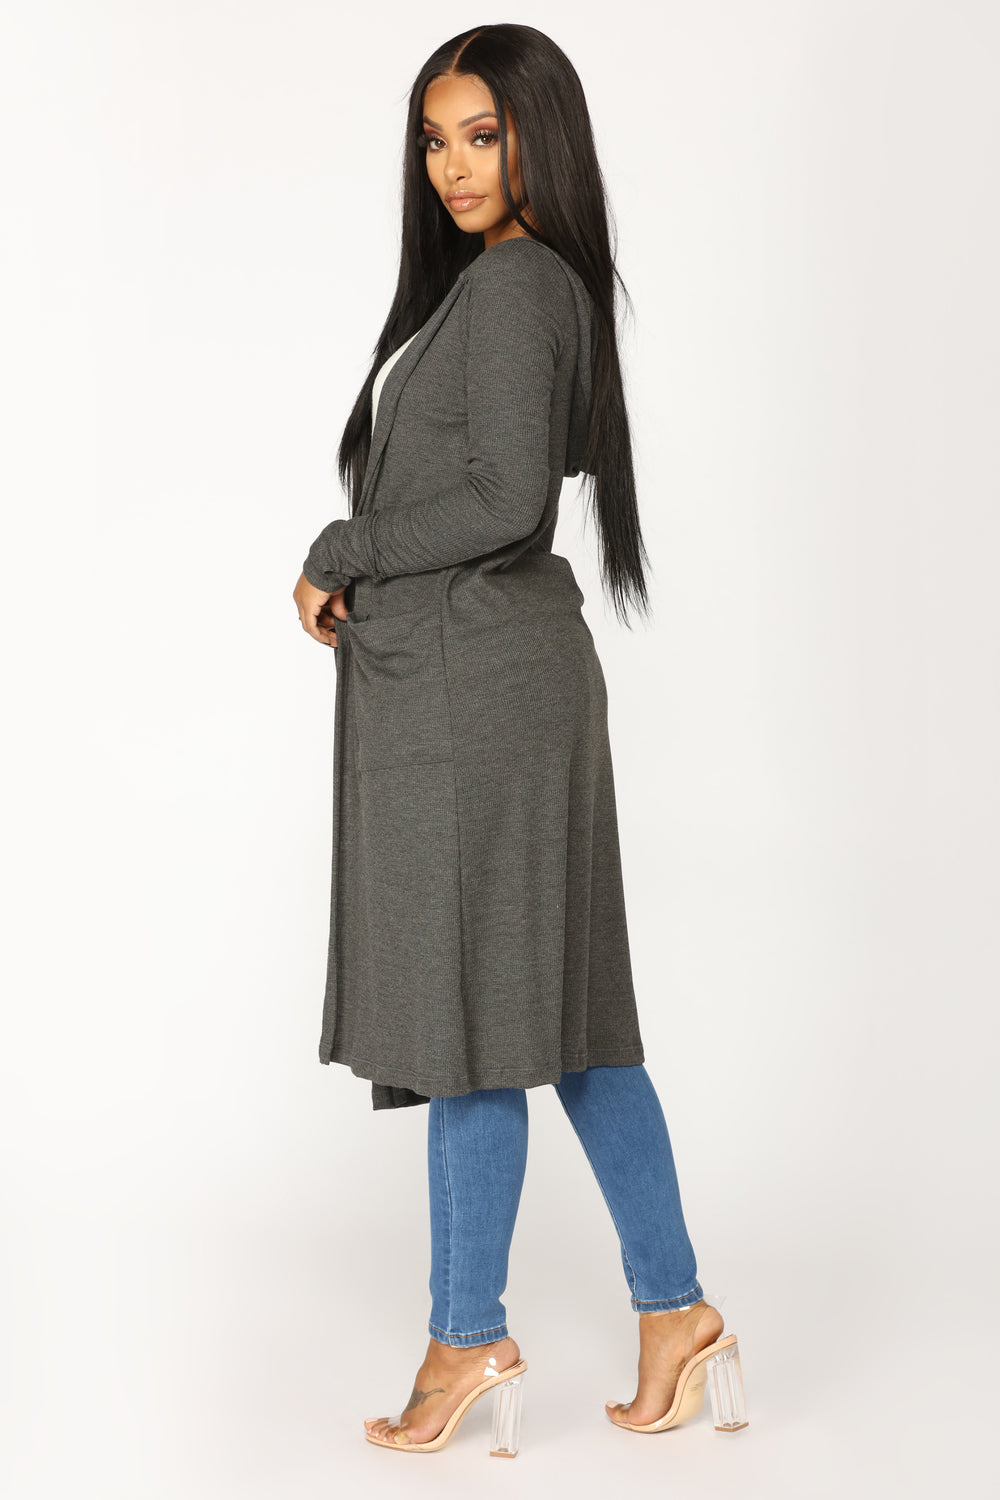 Sunday Kind Of Love Duster Jacket - Charcoal